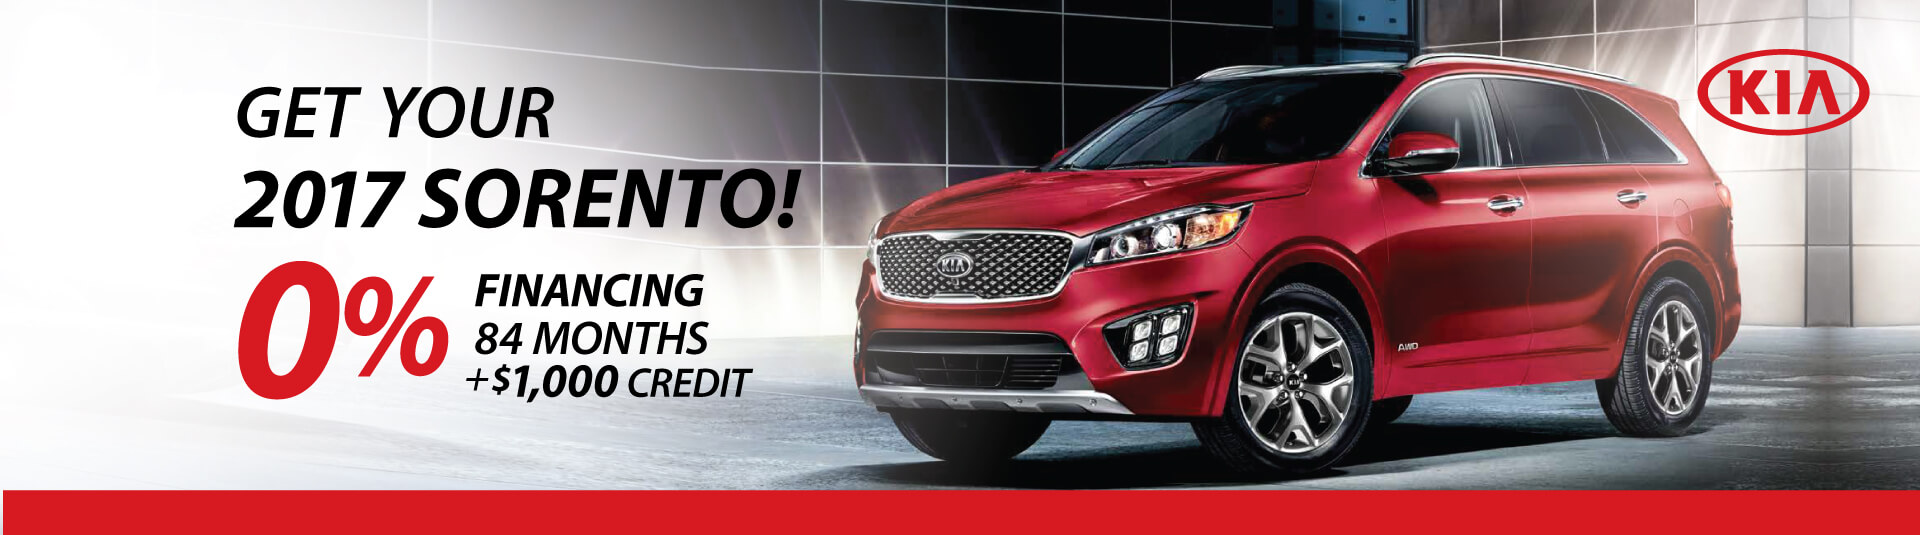 Kia Sorento Finance Deal